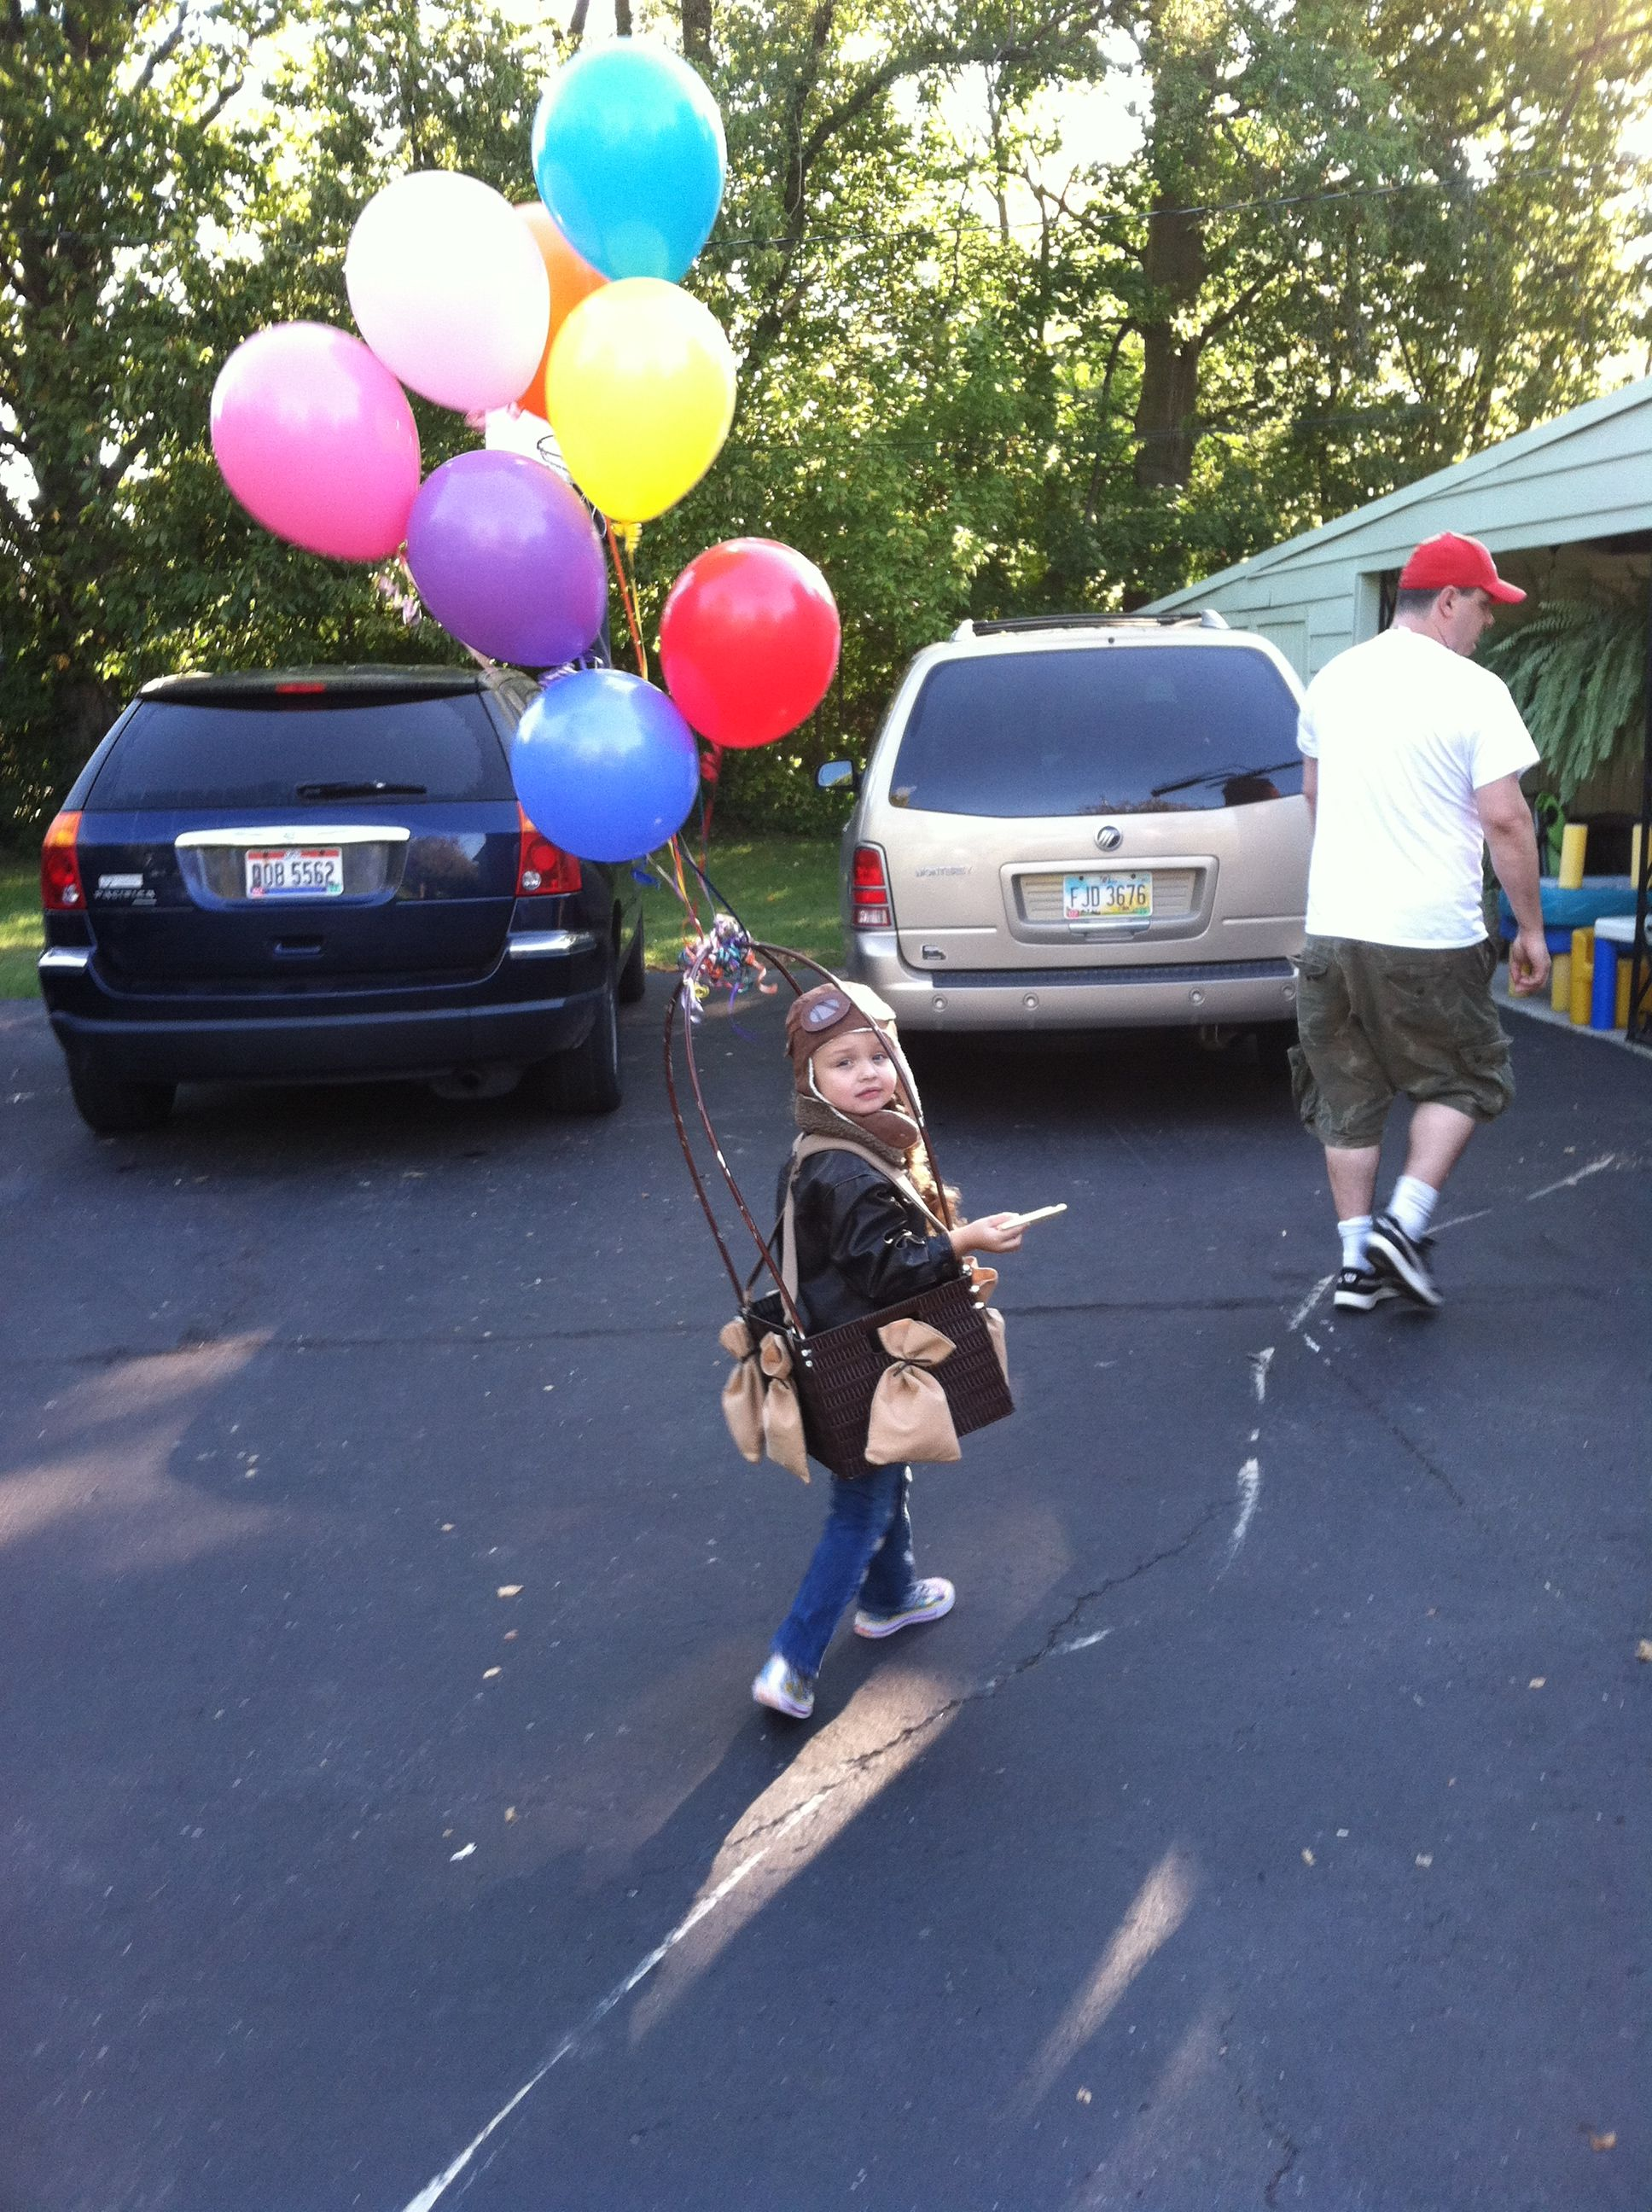 Home made Halloween. Made my daughter a hot air balloon costume. Completed look with bomber jacket and aviator cap and goggles.